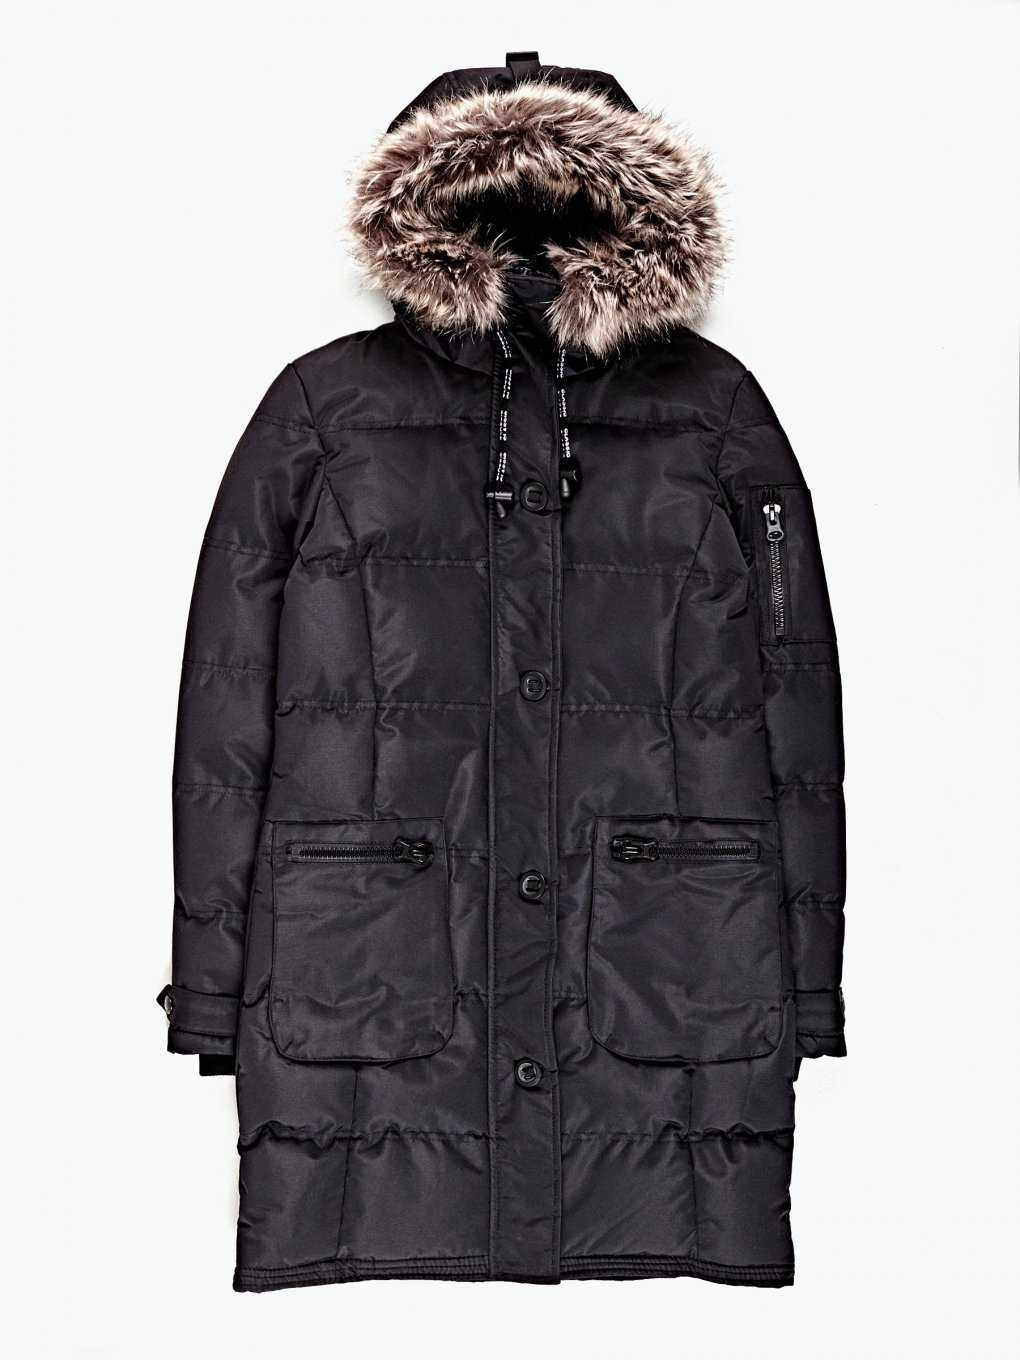 Prolonged padded jacket with hood